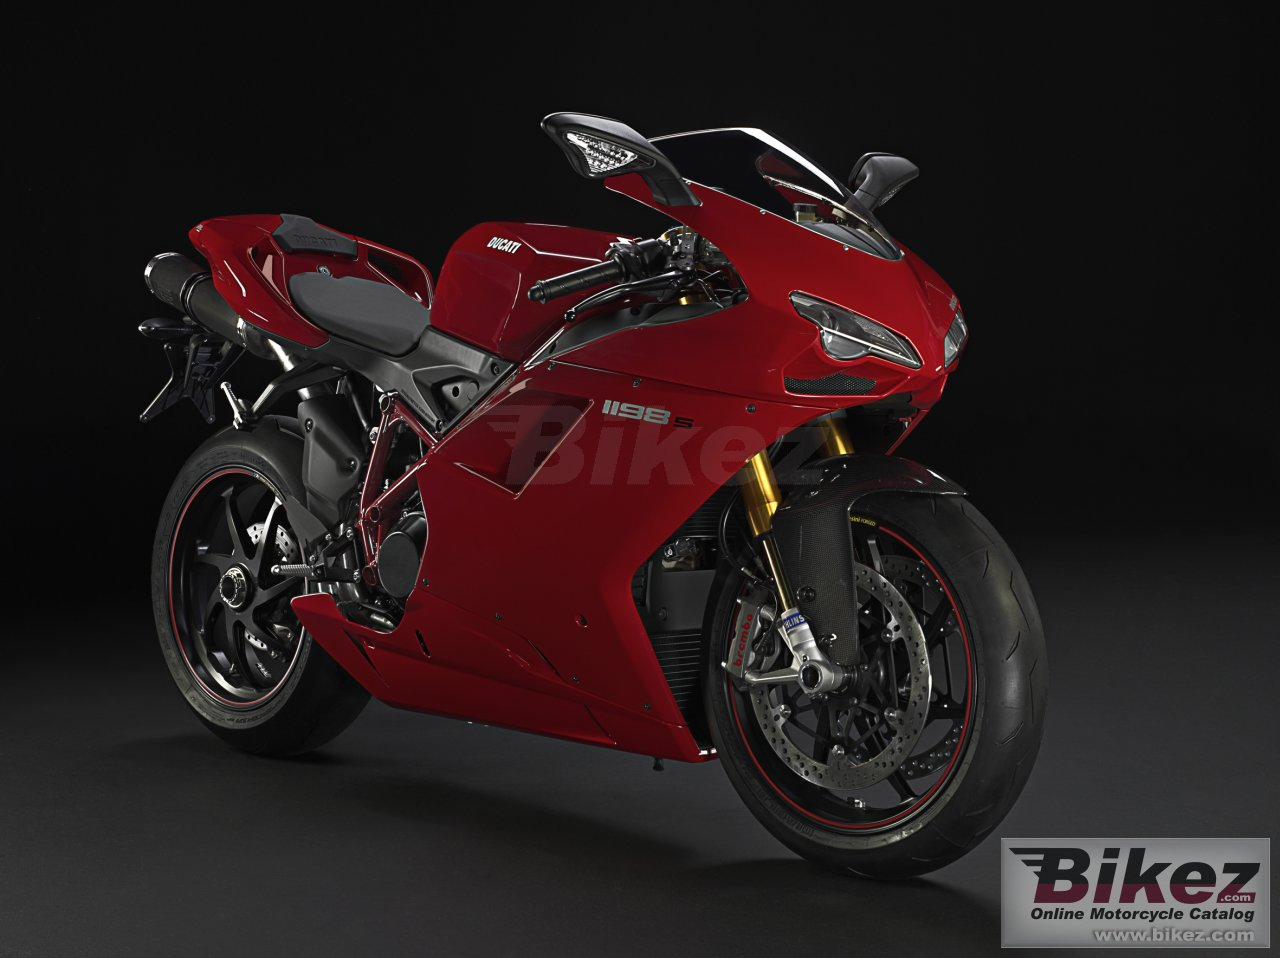 Big Ducati 1198 s picture and wallpaper from Bikez.com